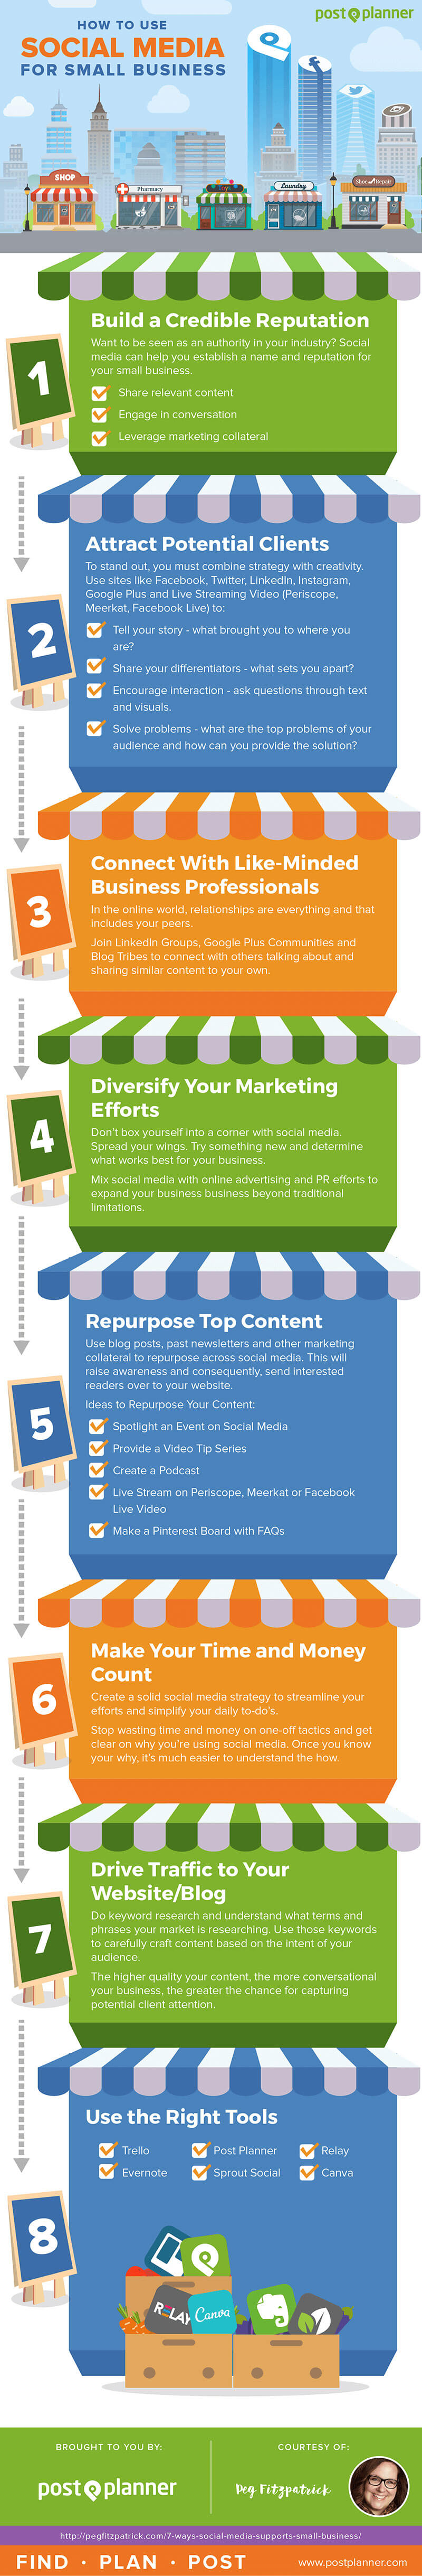 How-to-Use-Social-Media-for-Small-Business-Infographic